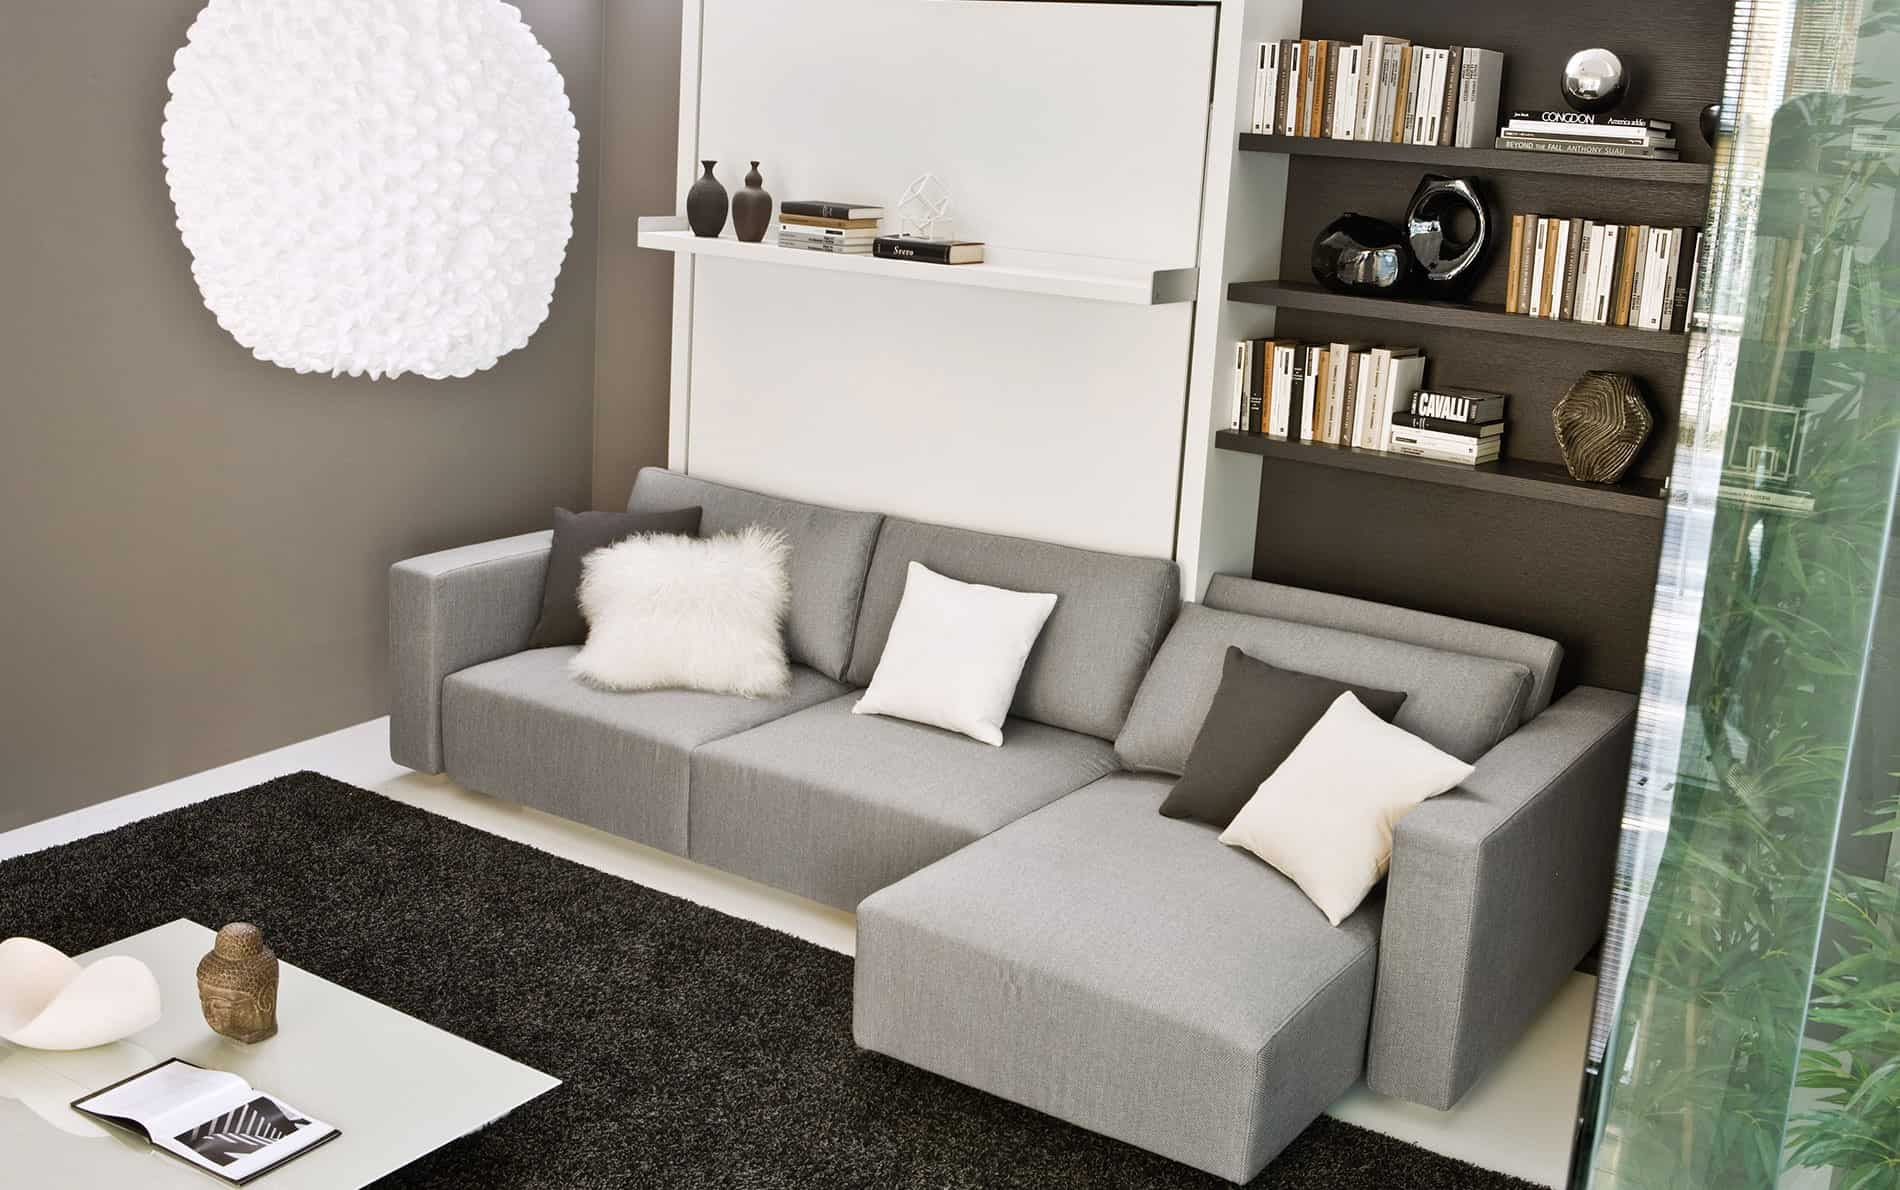 clei schrankbett mit sofa designer schrankbett mit sofa. Black Bedroom Furniture Sets. Home Design Ideas